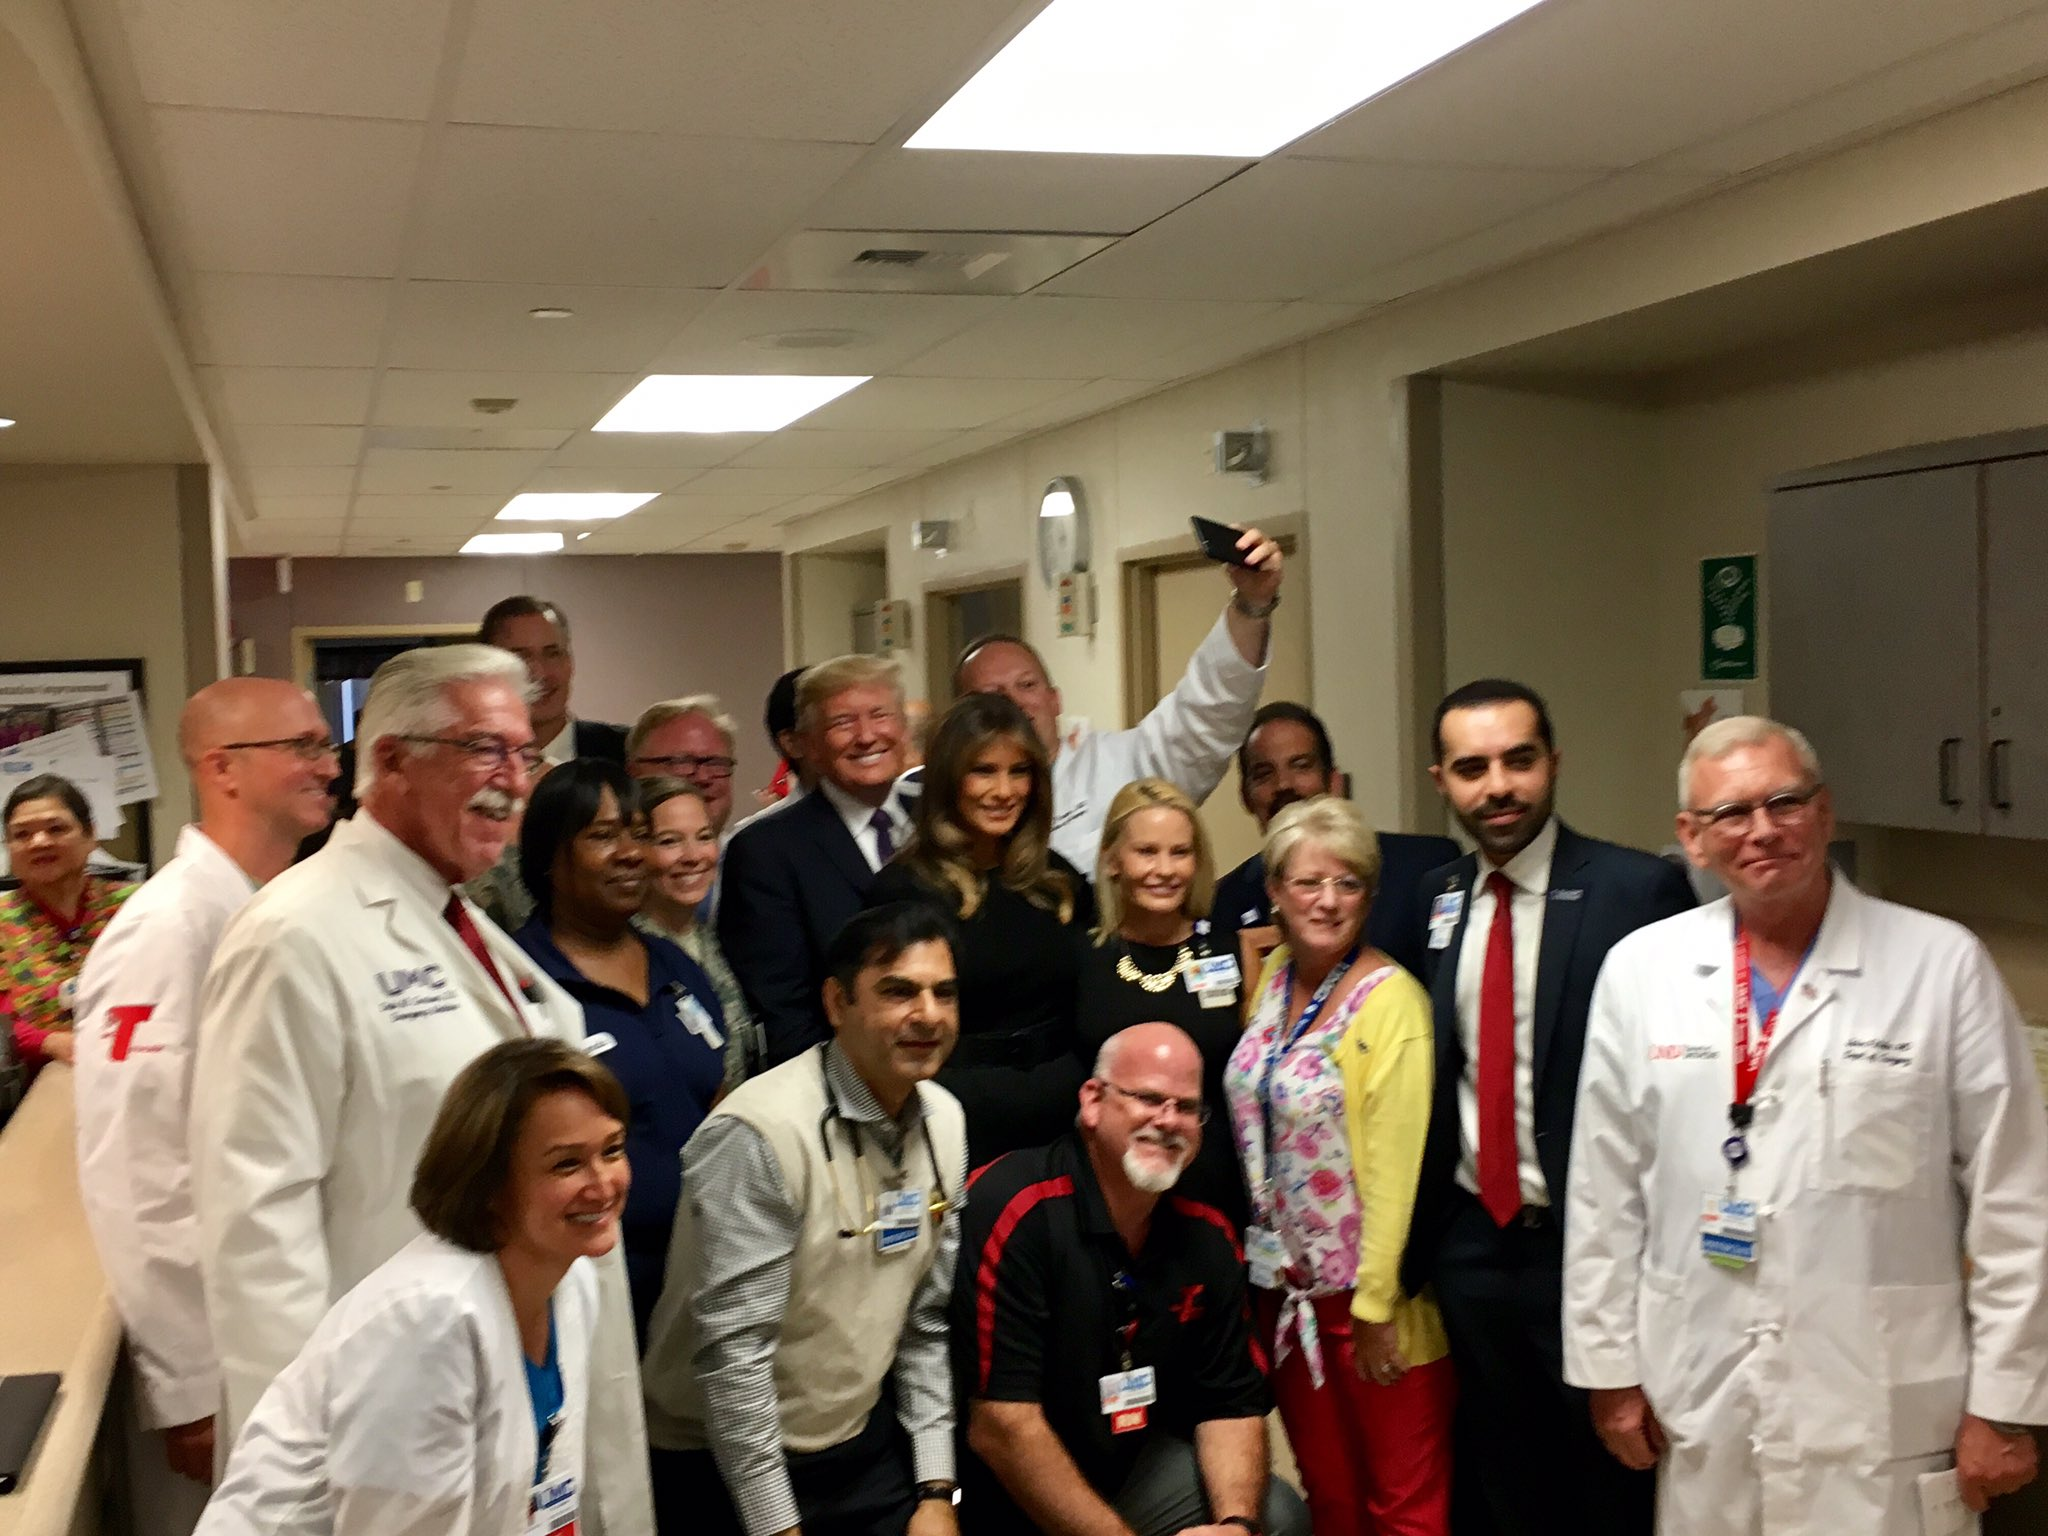 .@POTUS and @FLOTUS met with members of the Trauma Team at UMC who treated over 100 people. #VegasStrong https://t.co/KJxOyWiBcC